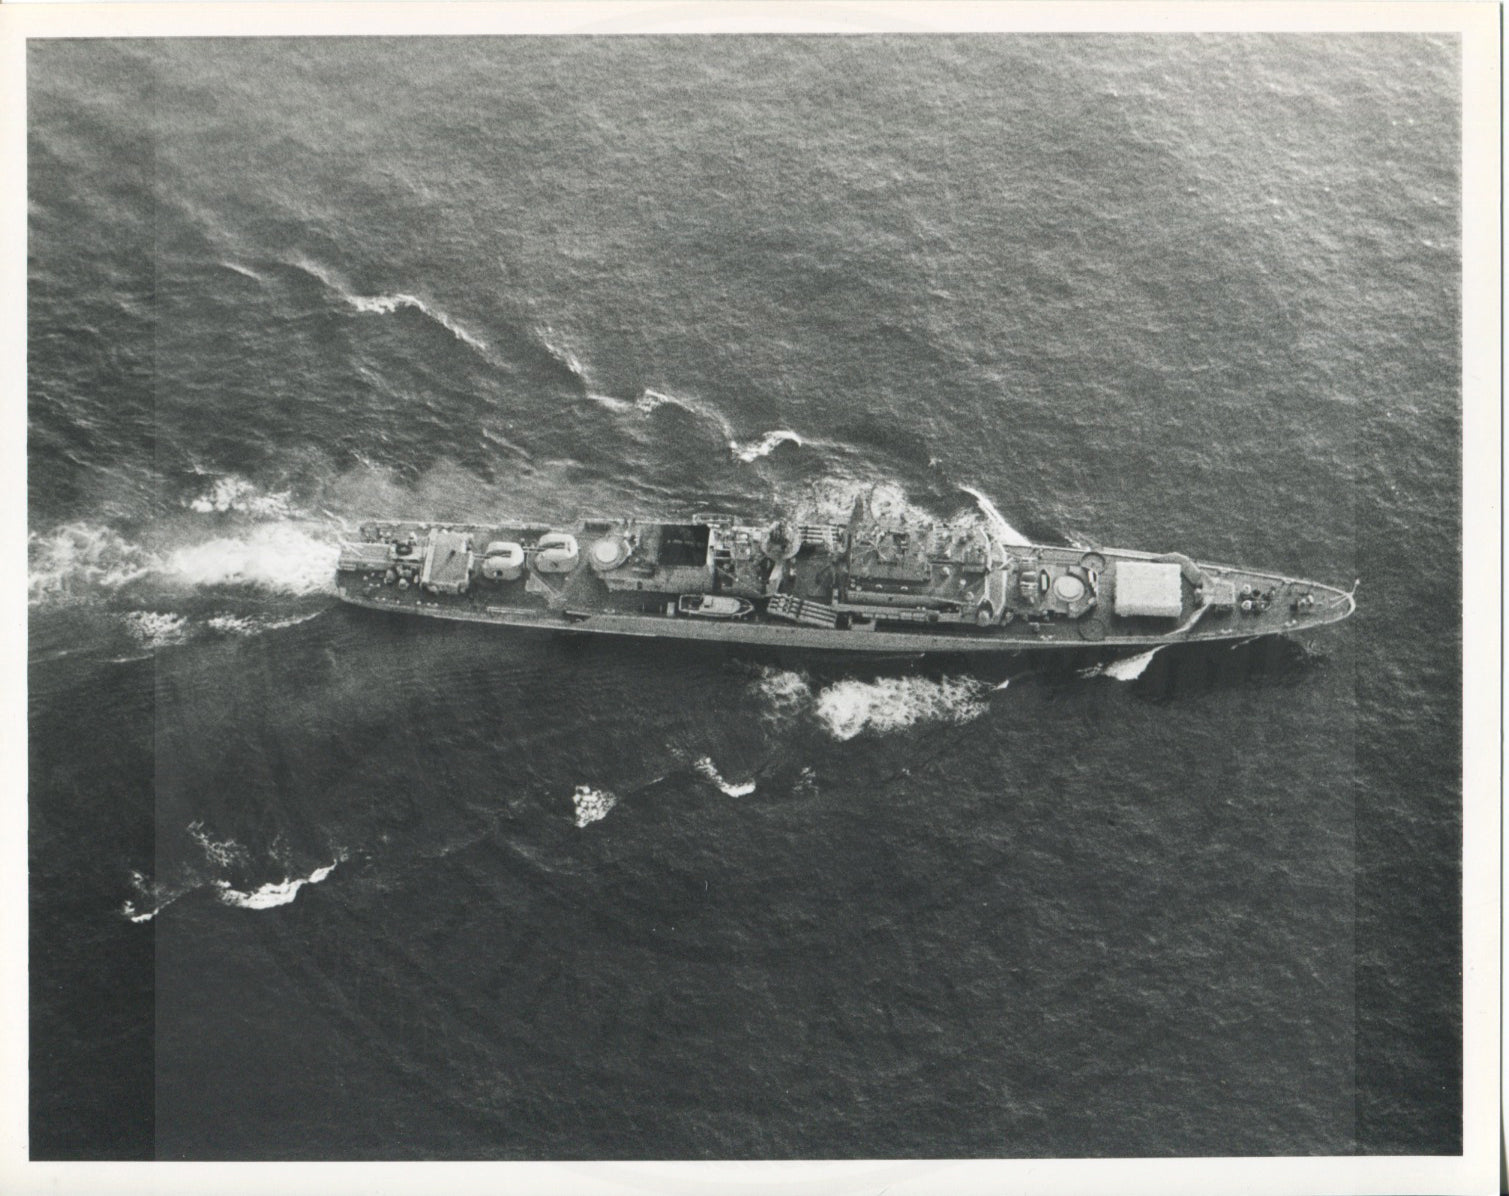 Official U.S. Navy photo of Soviet Krivak I class frigate Restovinyy - Annapolis Maritime Antiques